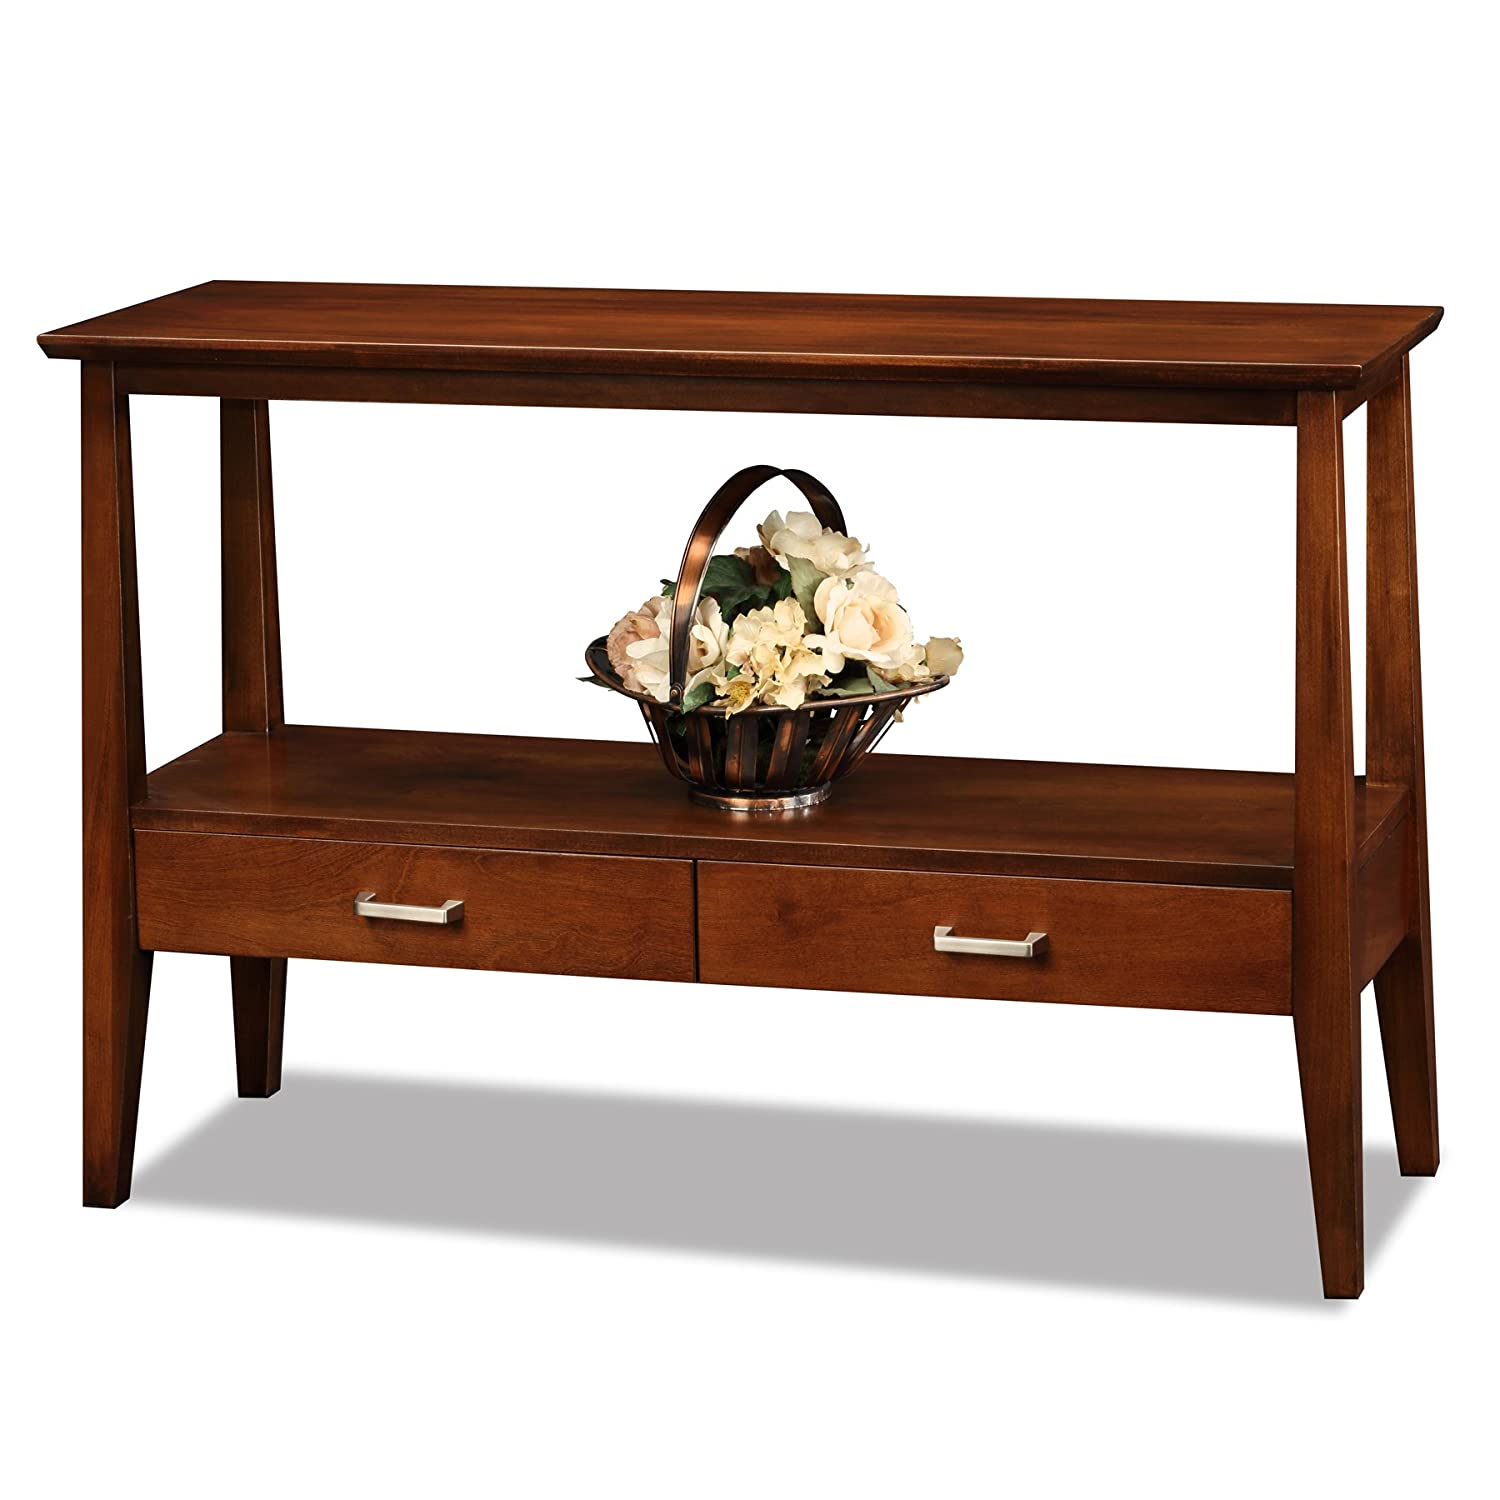 Amazon.com: Leick Delton Hall Console Table With Drawers: Kitchen U0026 Dining